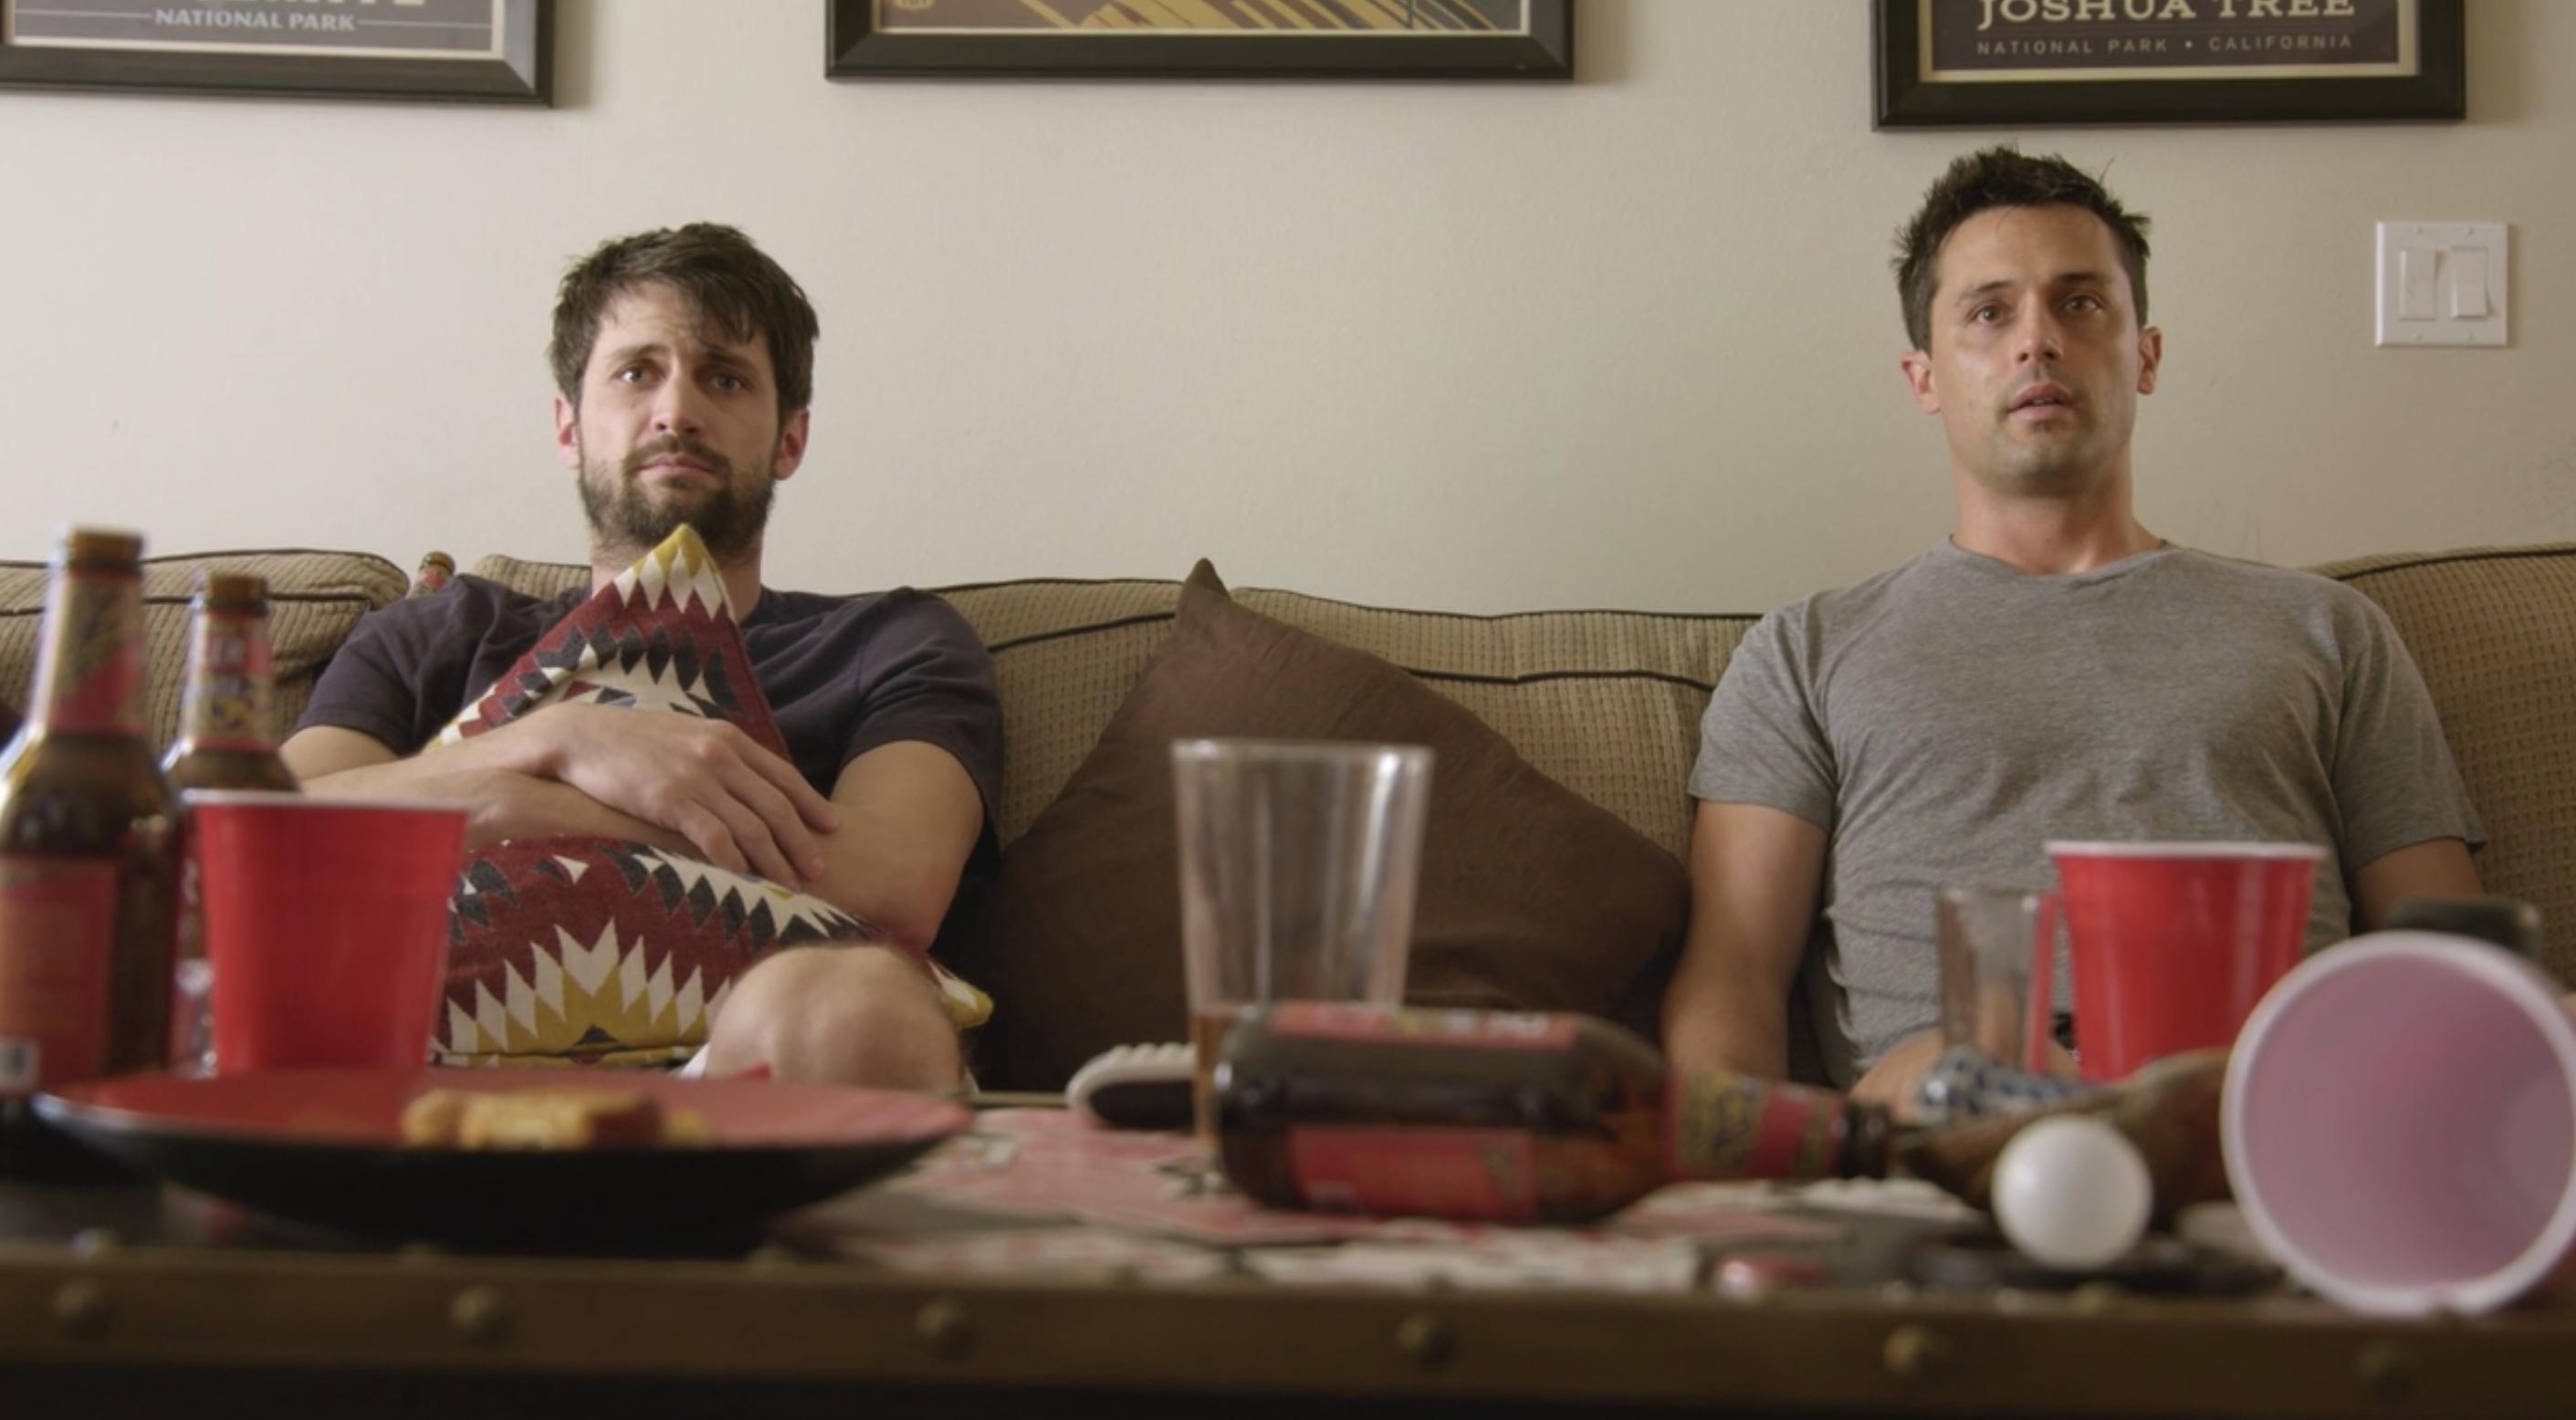 James Lafferty and Stephen Colletti sitting on a couch behind a table strewn with Solo cups and beer bottles